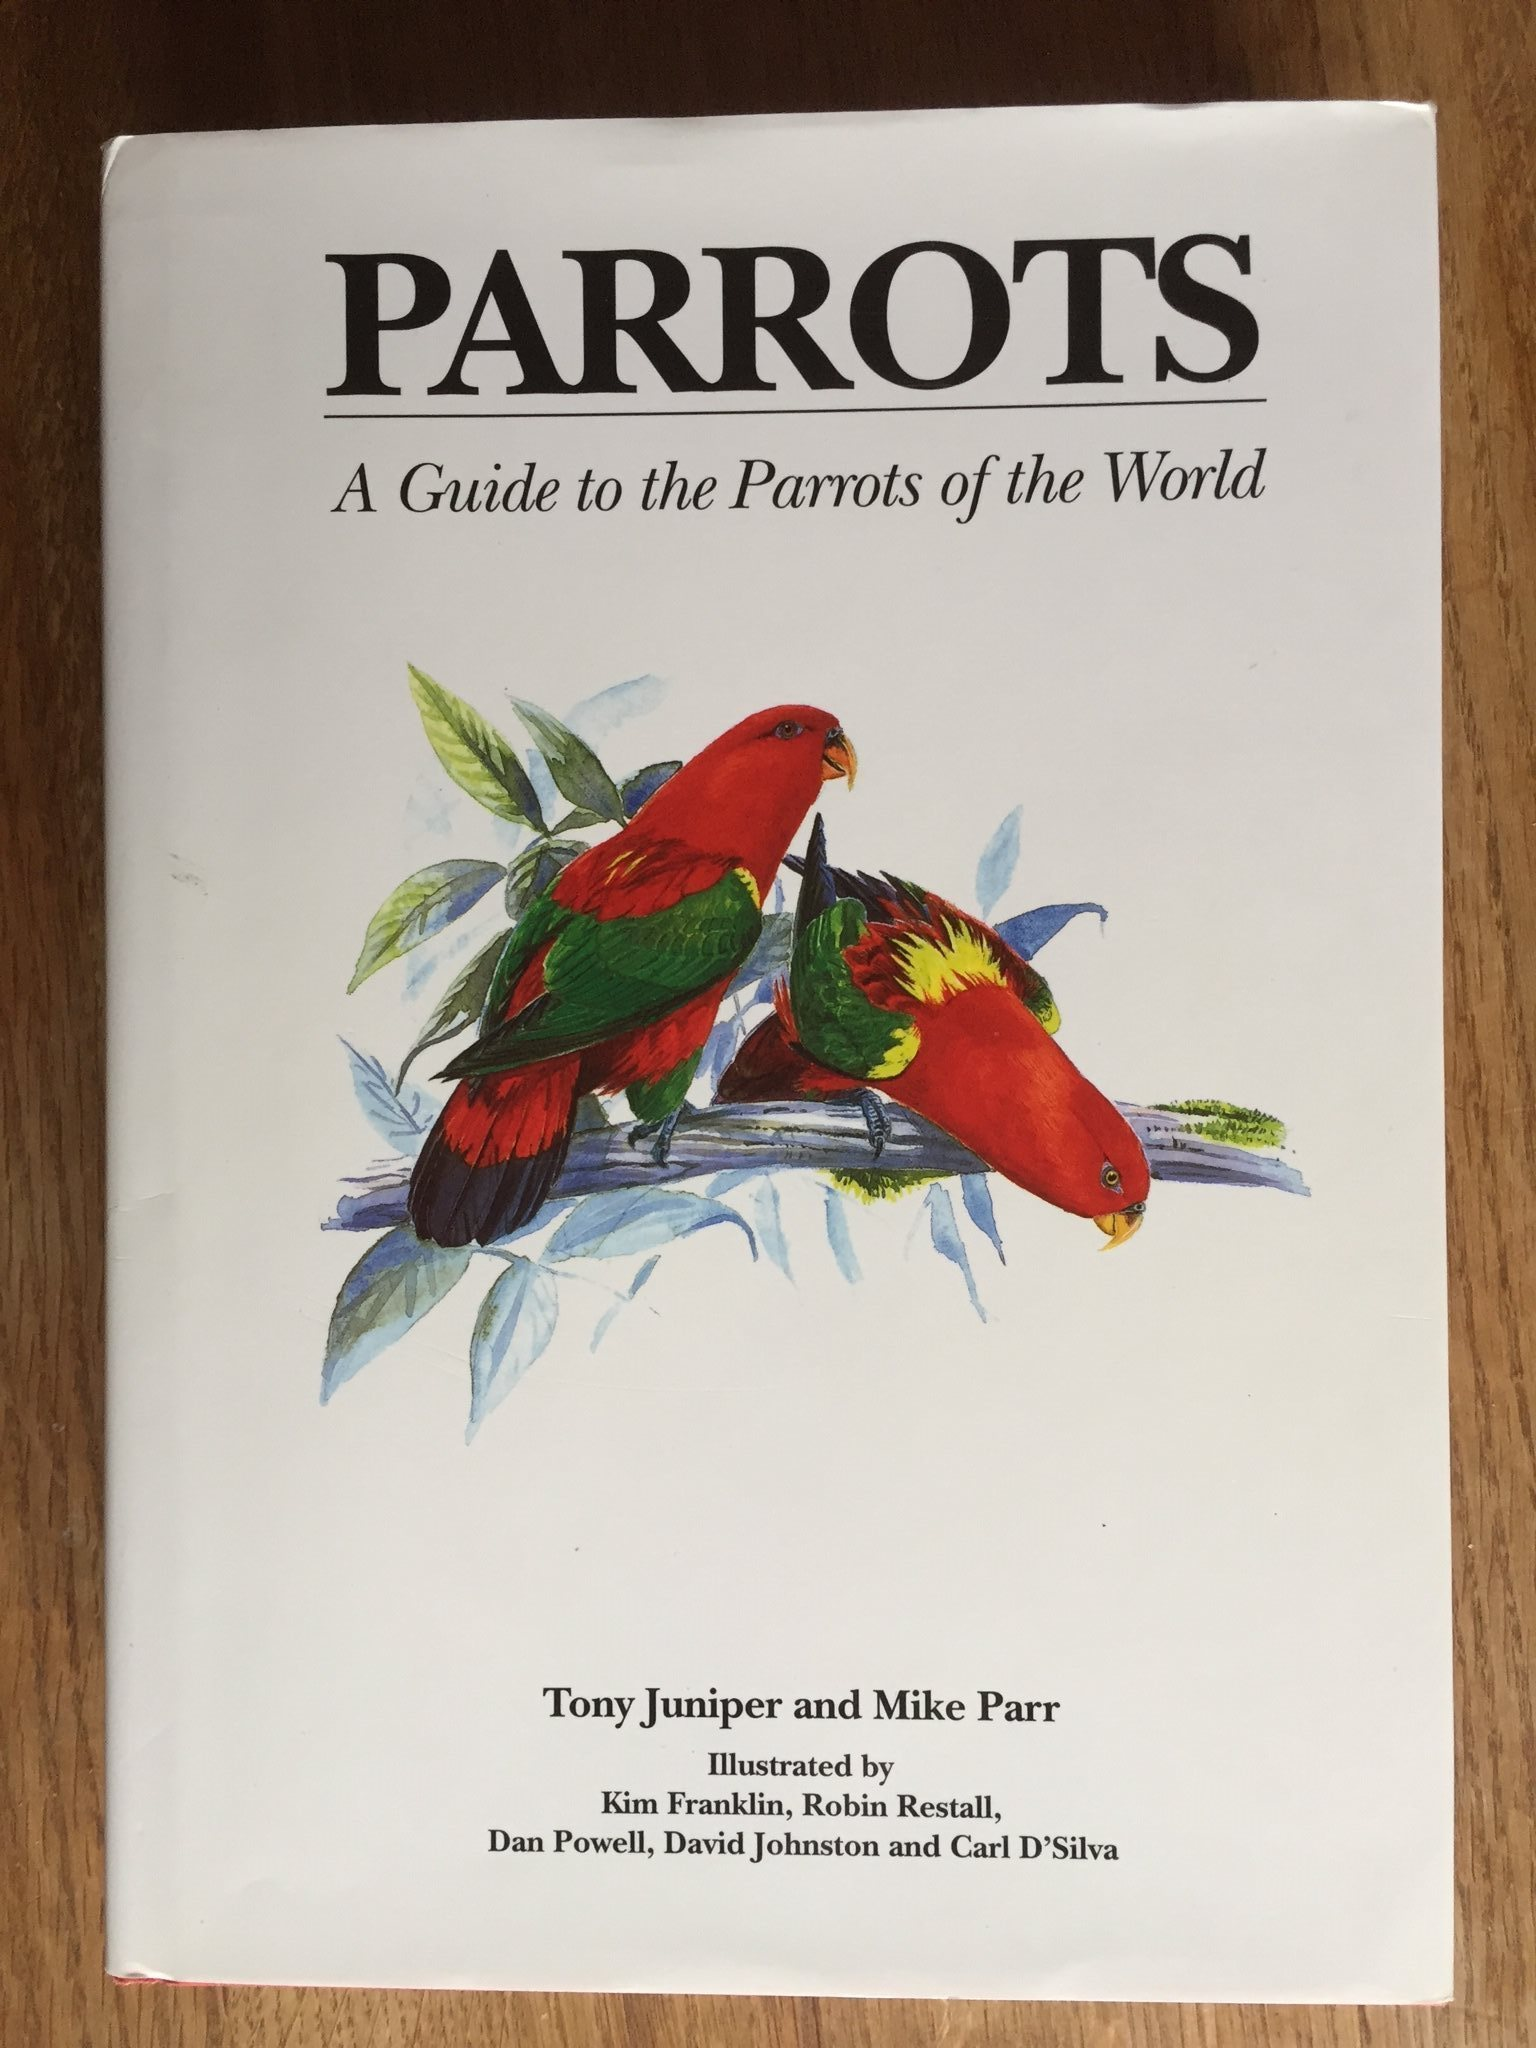 PARROTS, A Guide to the Parrots of the World